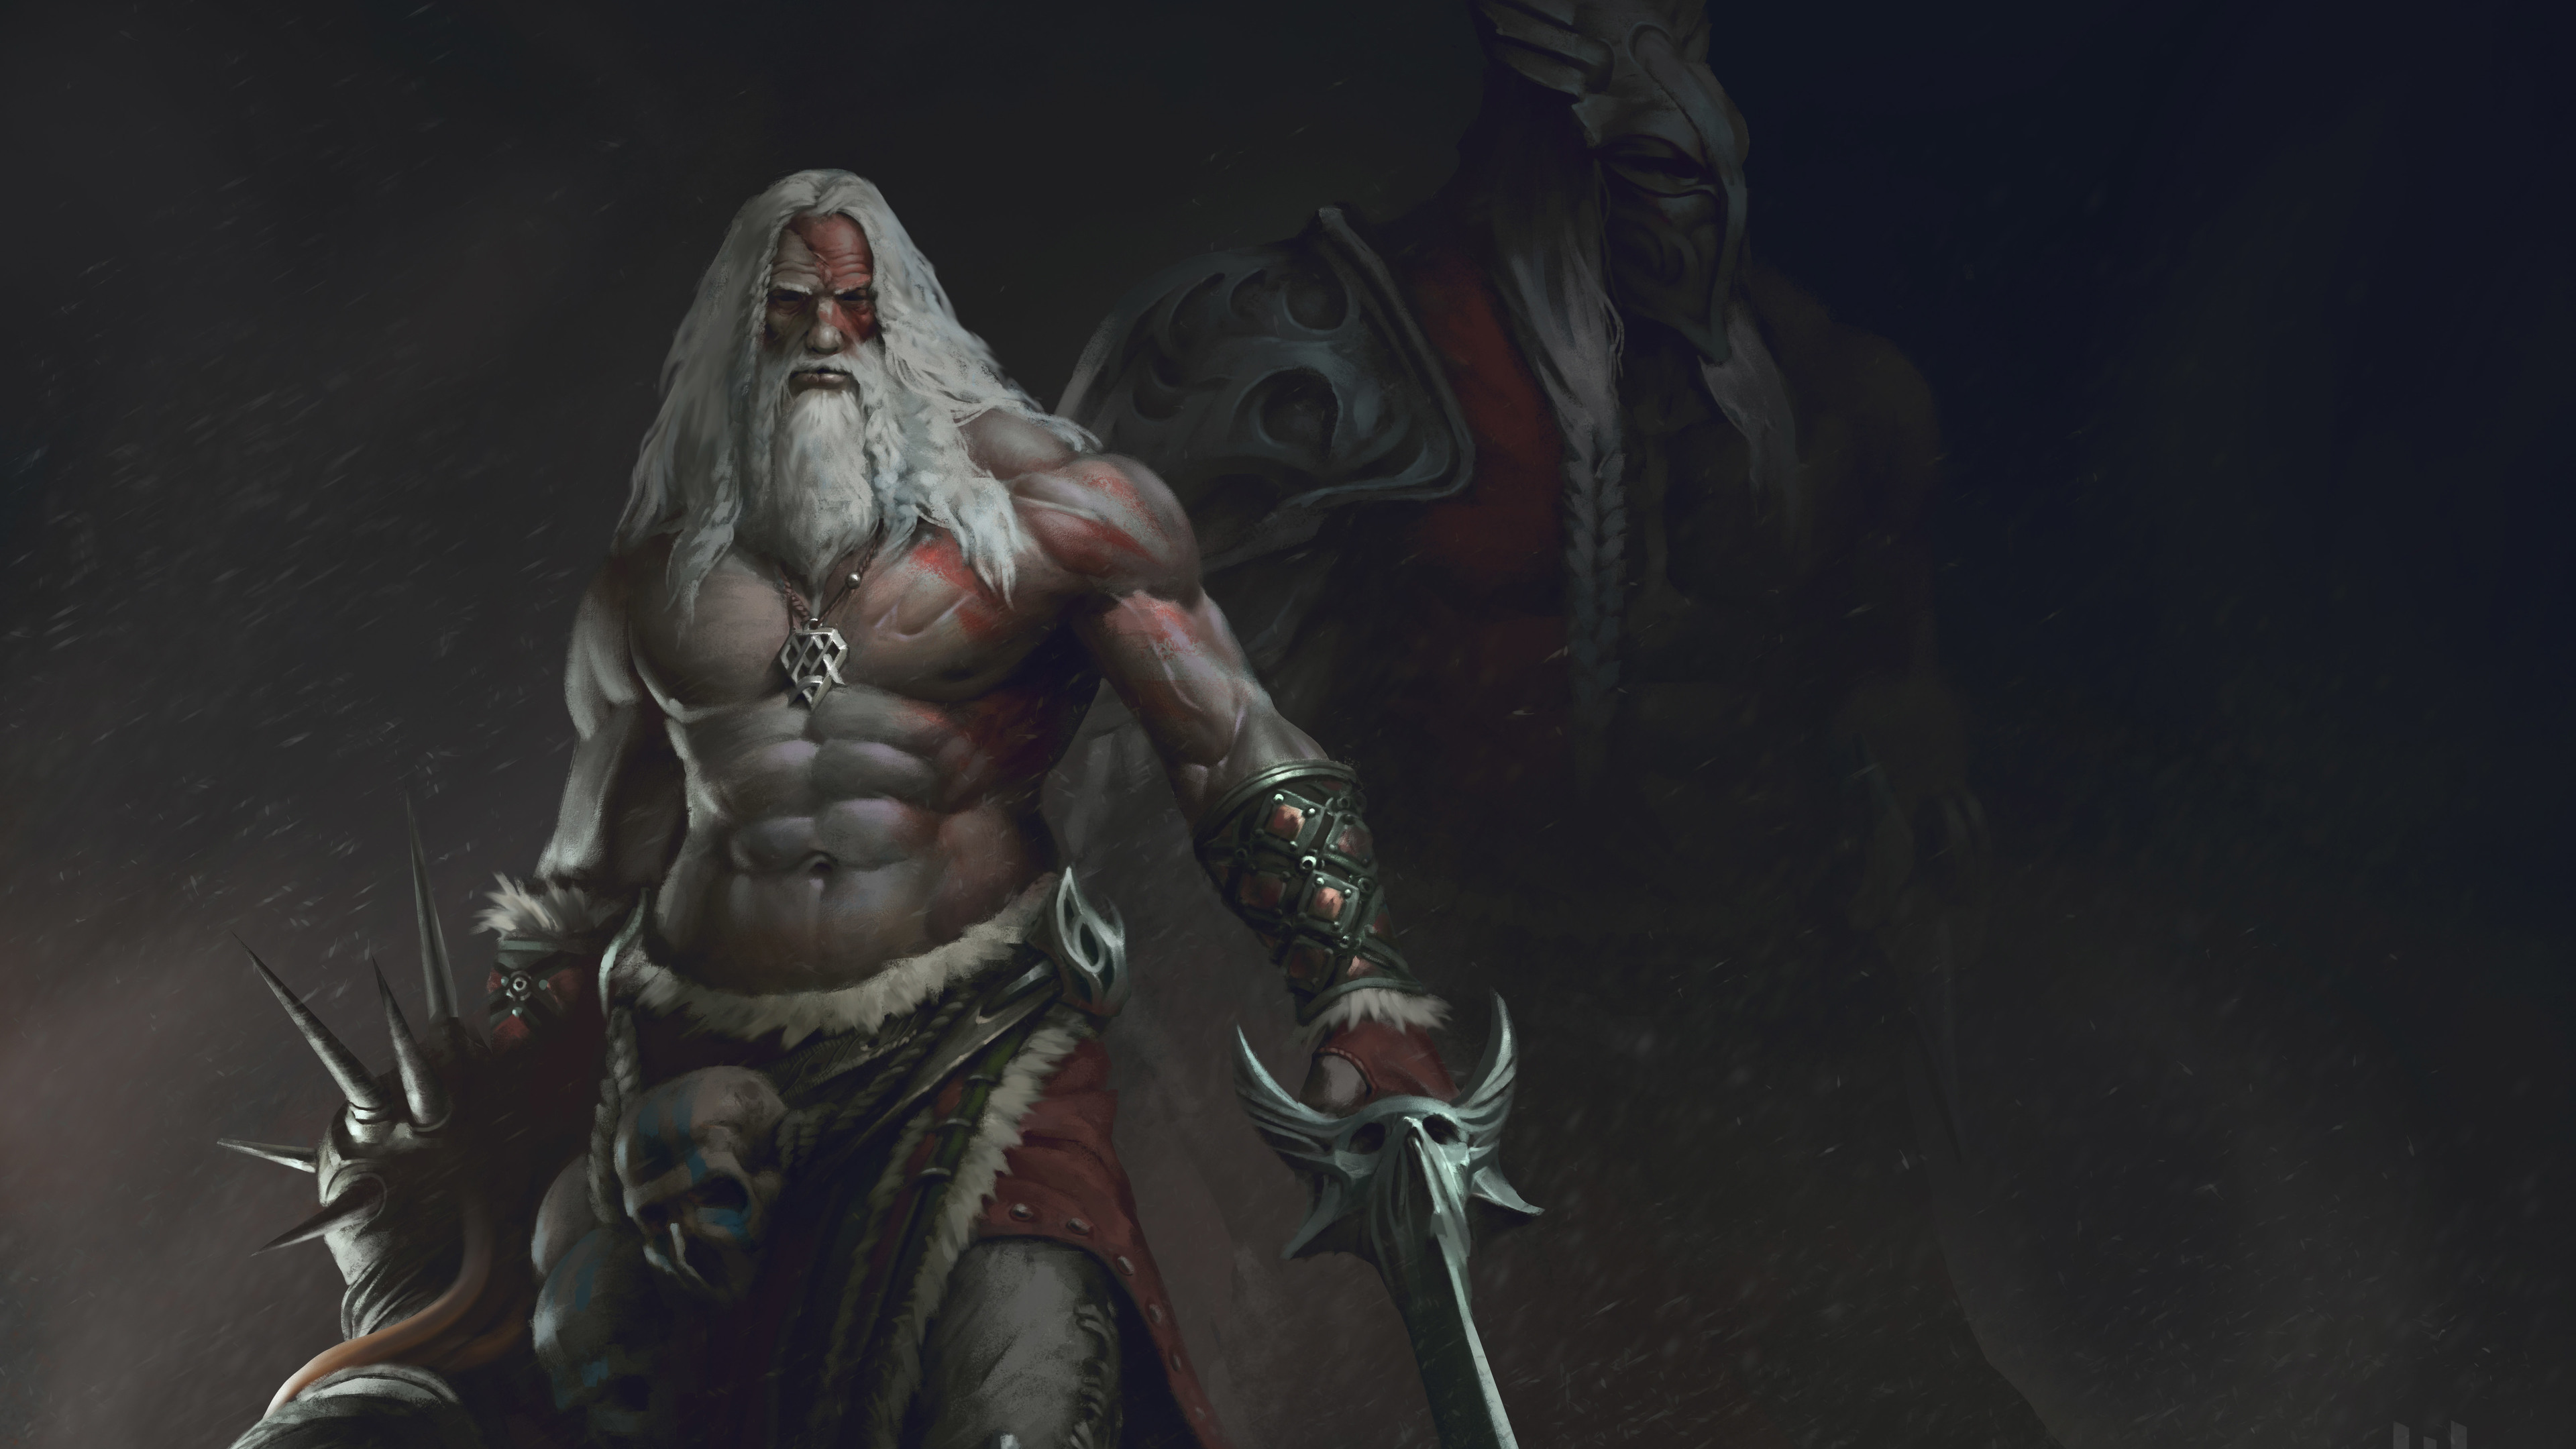 old beard man with sword warrior 4k 1540749690 - Old Beard Man With Sword Warrior 4k - hd-wallpapers, digital art wallpapers, deviantart wallpapers, artwork wallpapers, artist wallpapers, 5k wallpapers, 4k-wallpapers